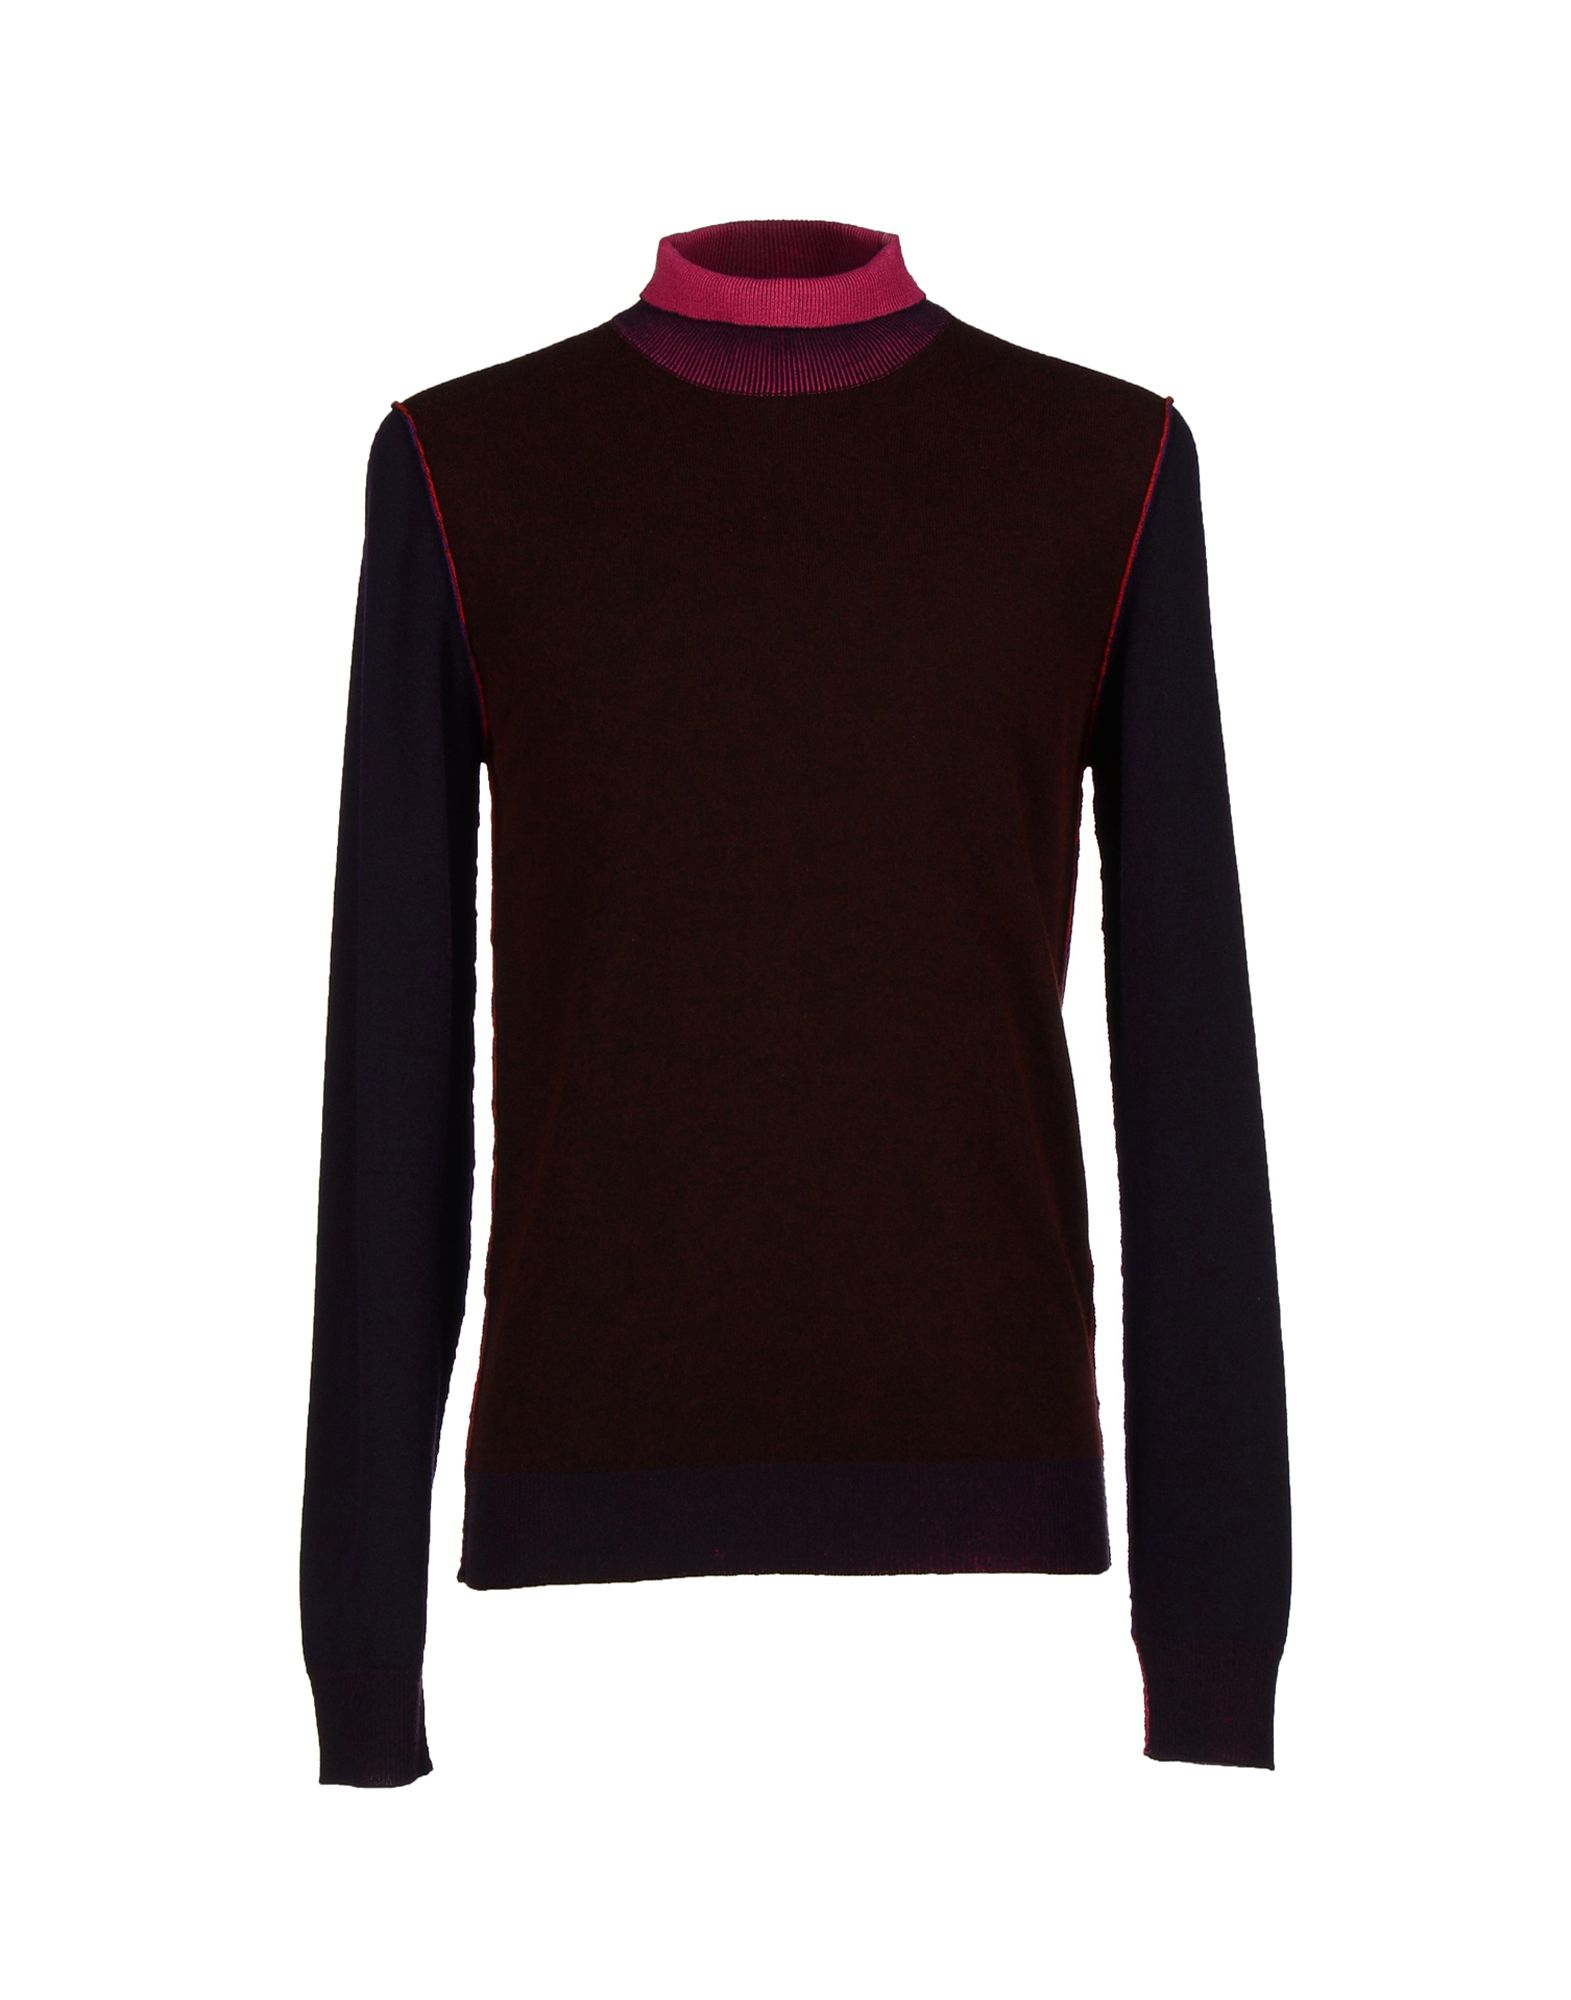 lyst jil sander turtleneck in purple for men. Black Bedroom Furniture Sets. Home Design Ideas